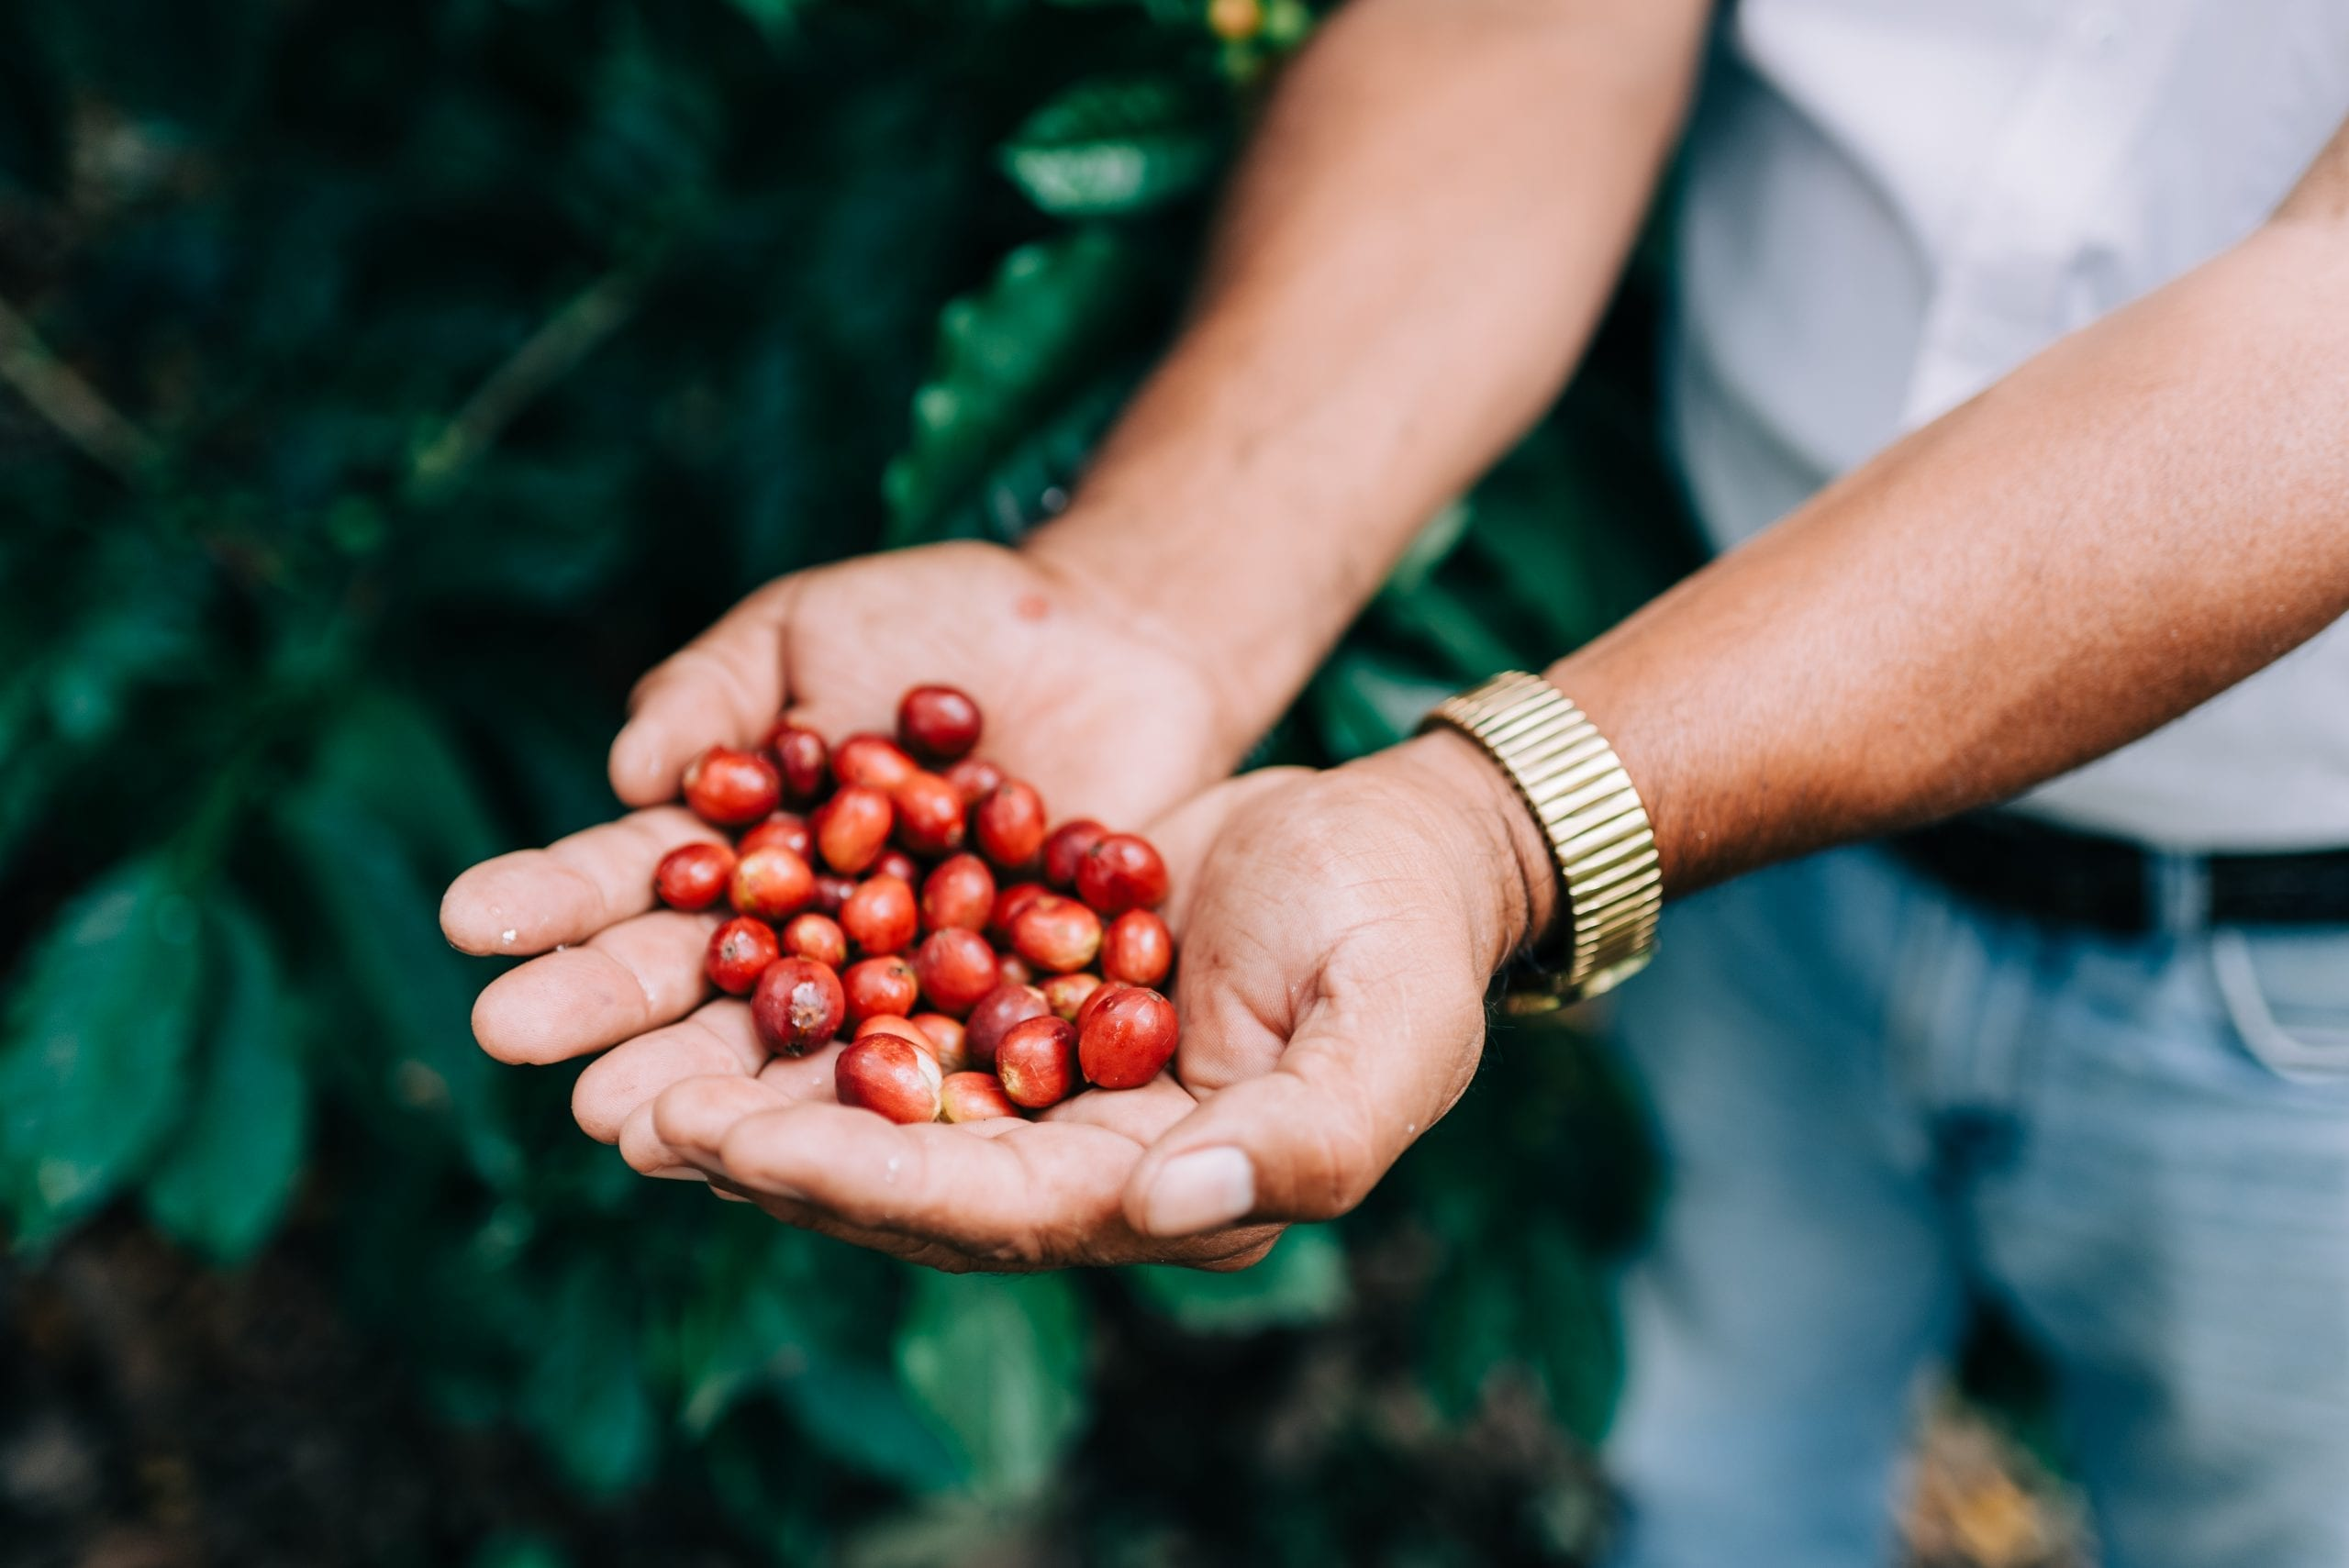 Recently harvested coffee cherries